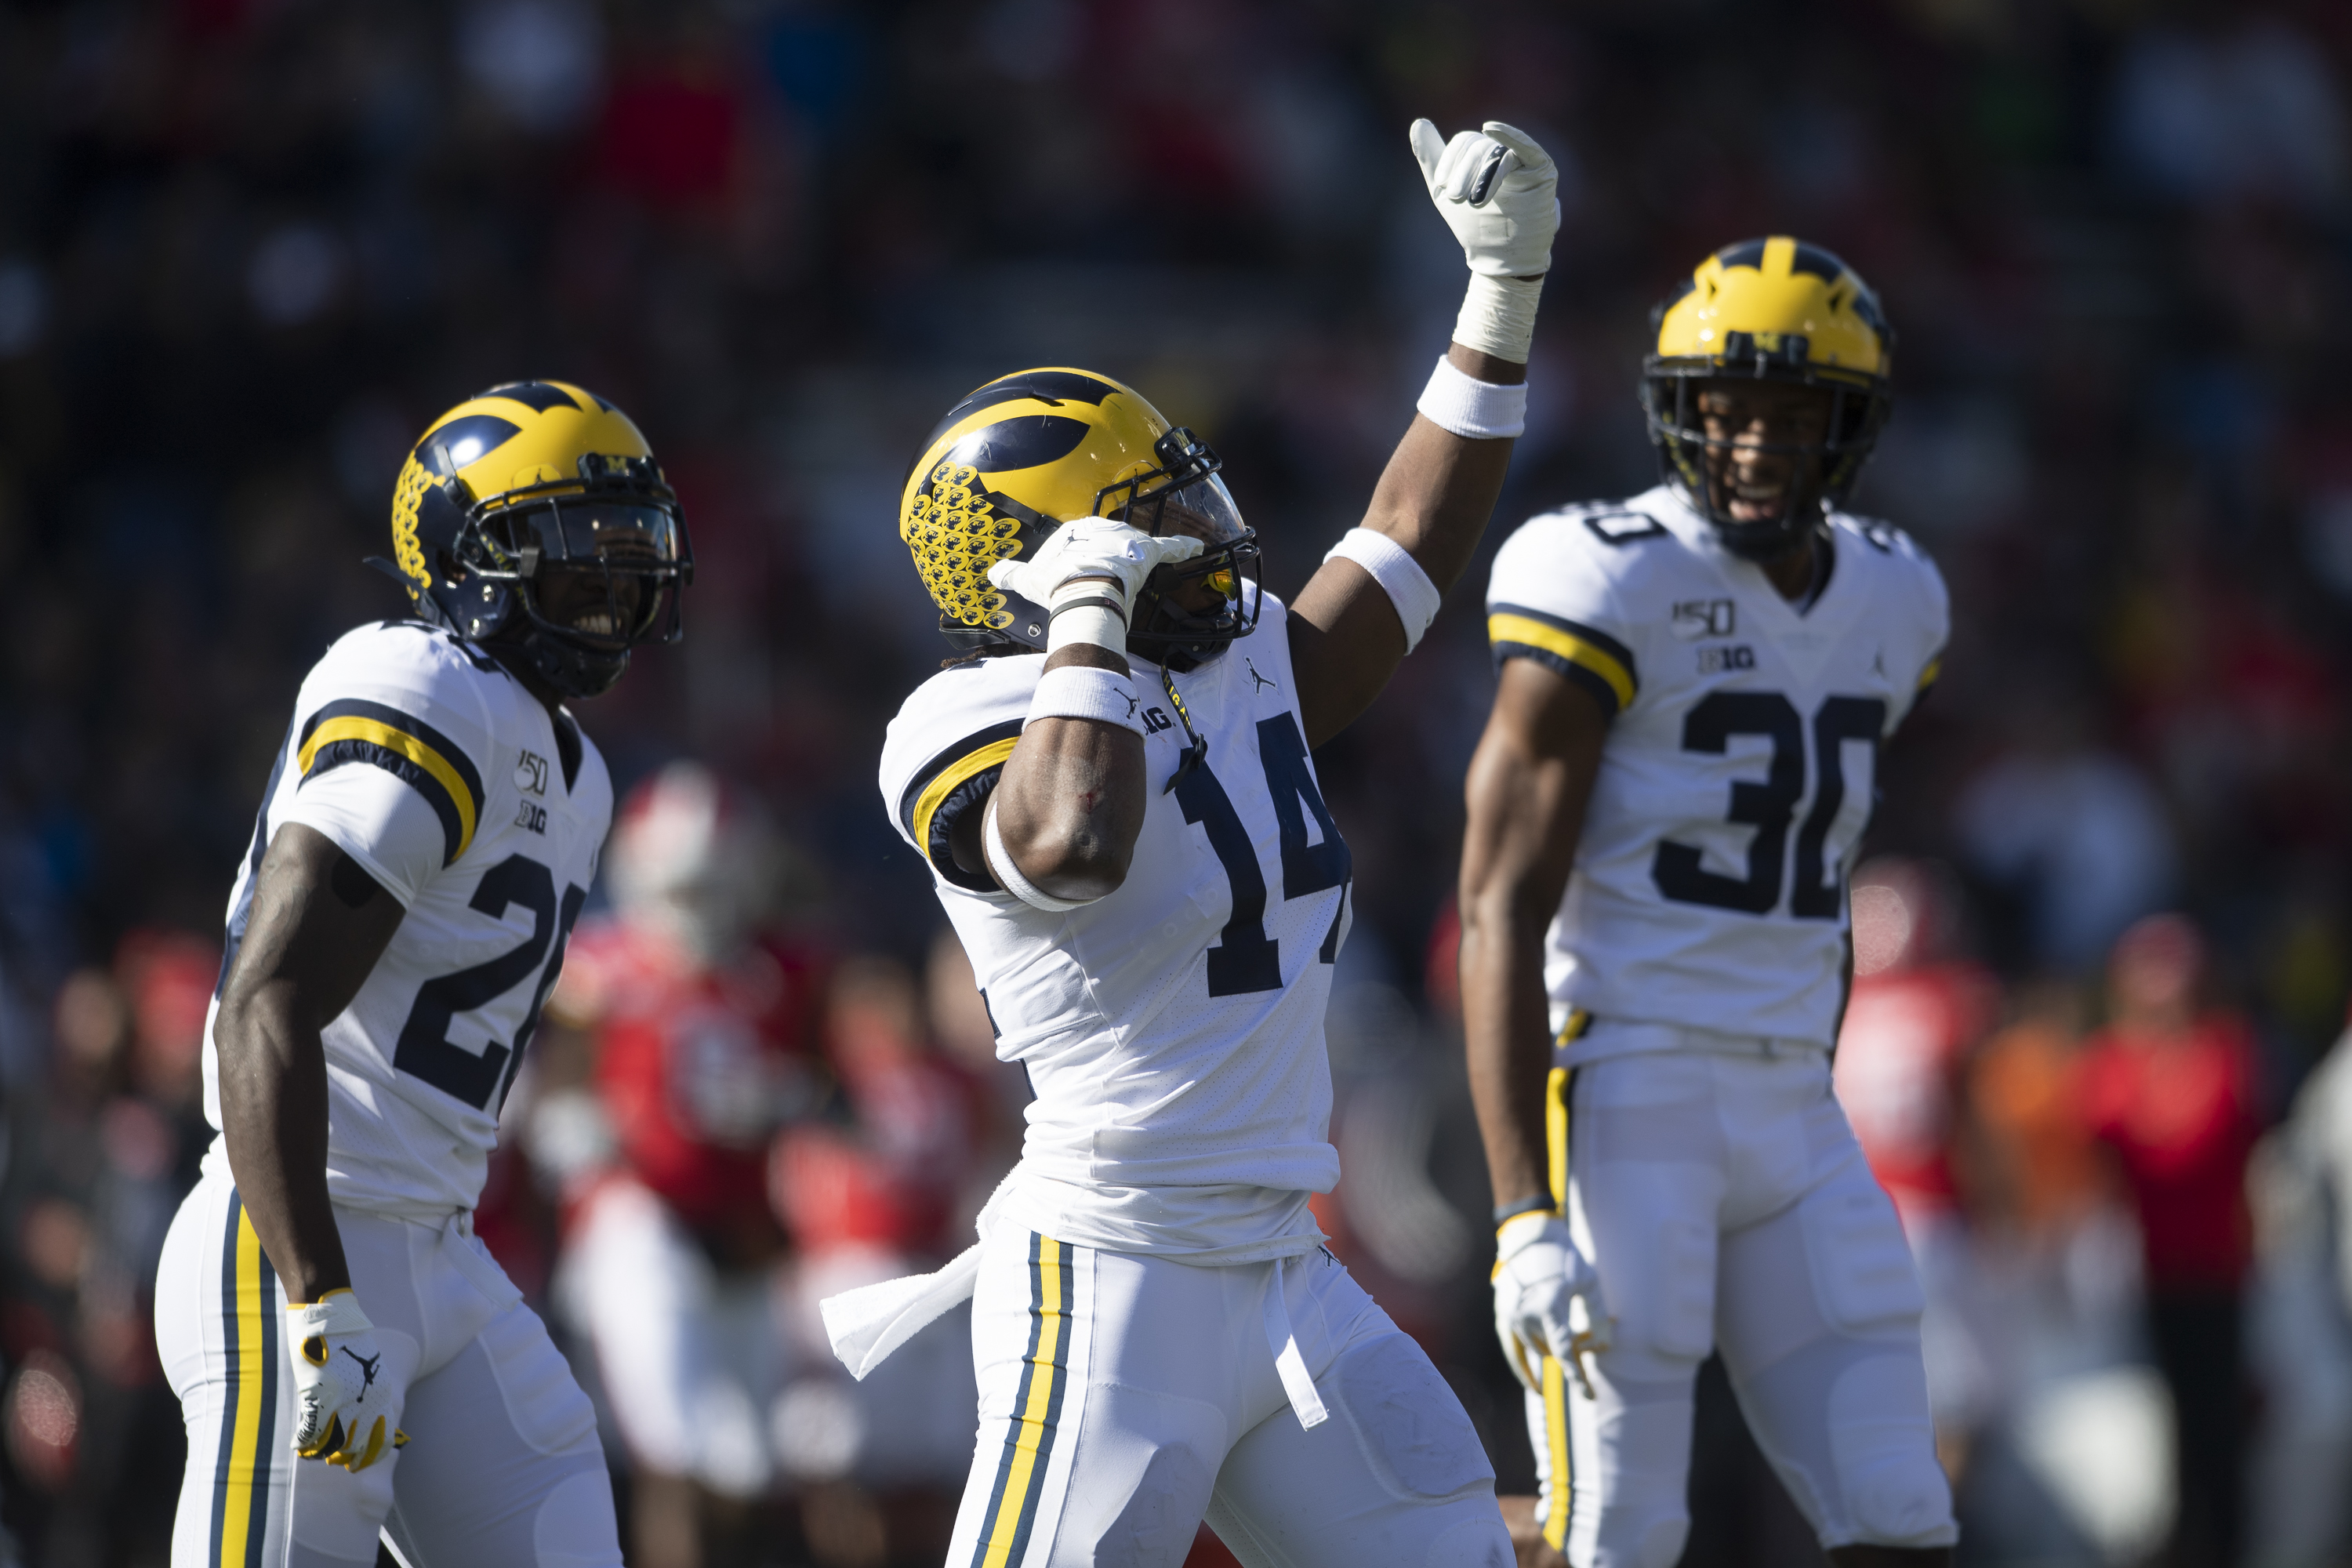 NCAA Football: Michigan at Maryland